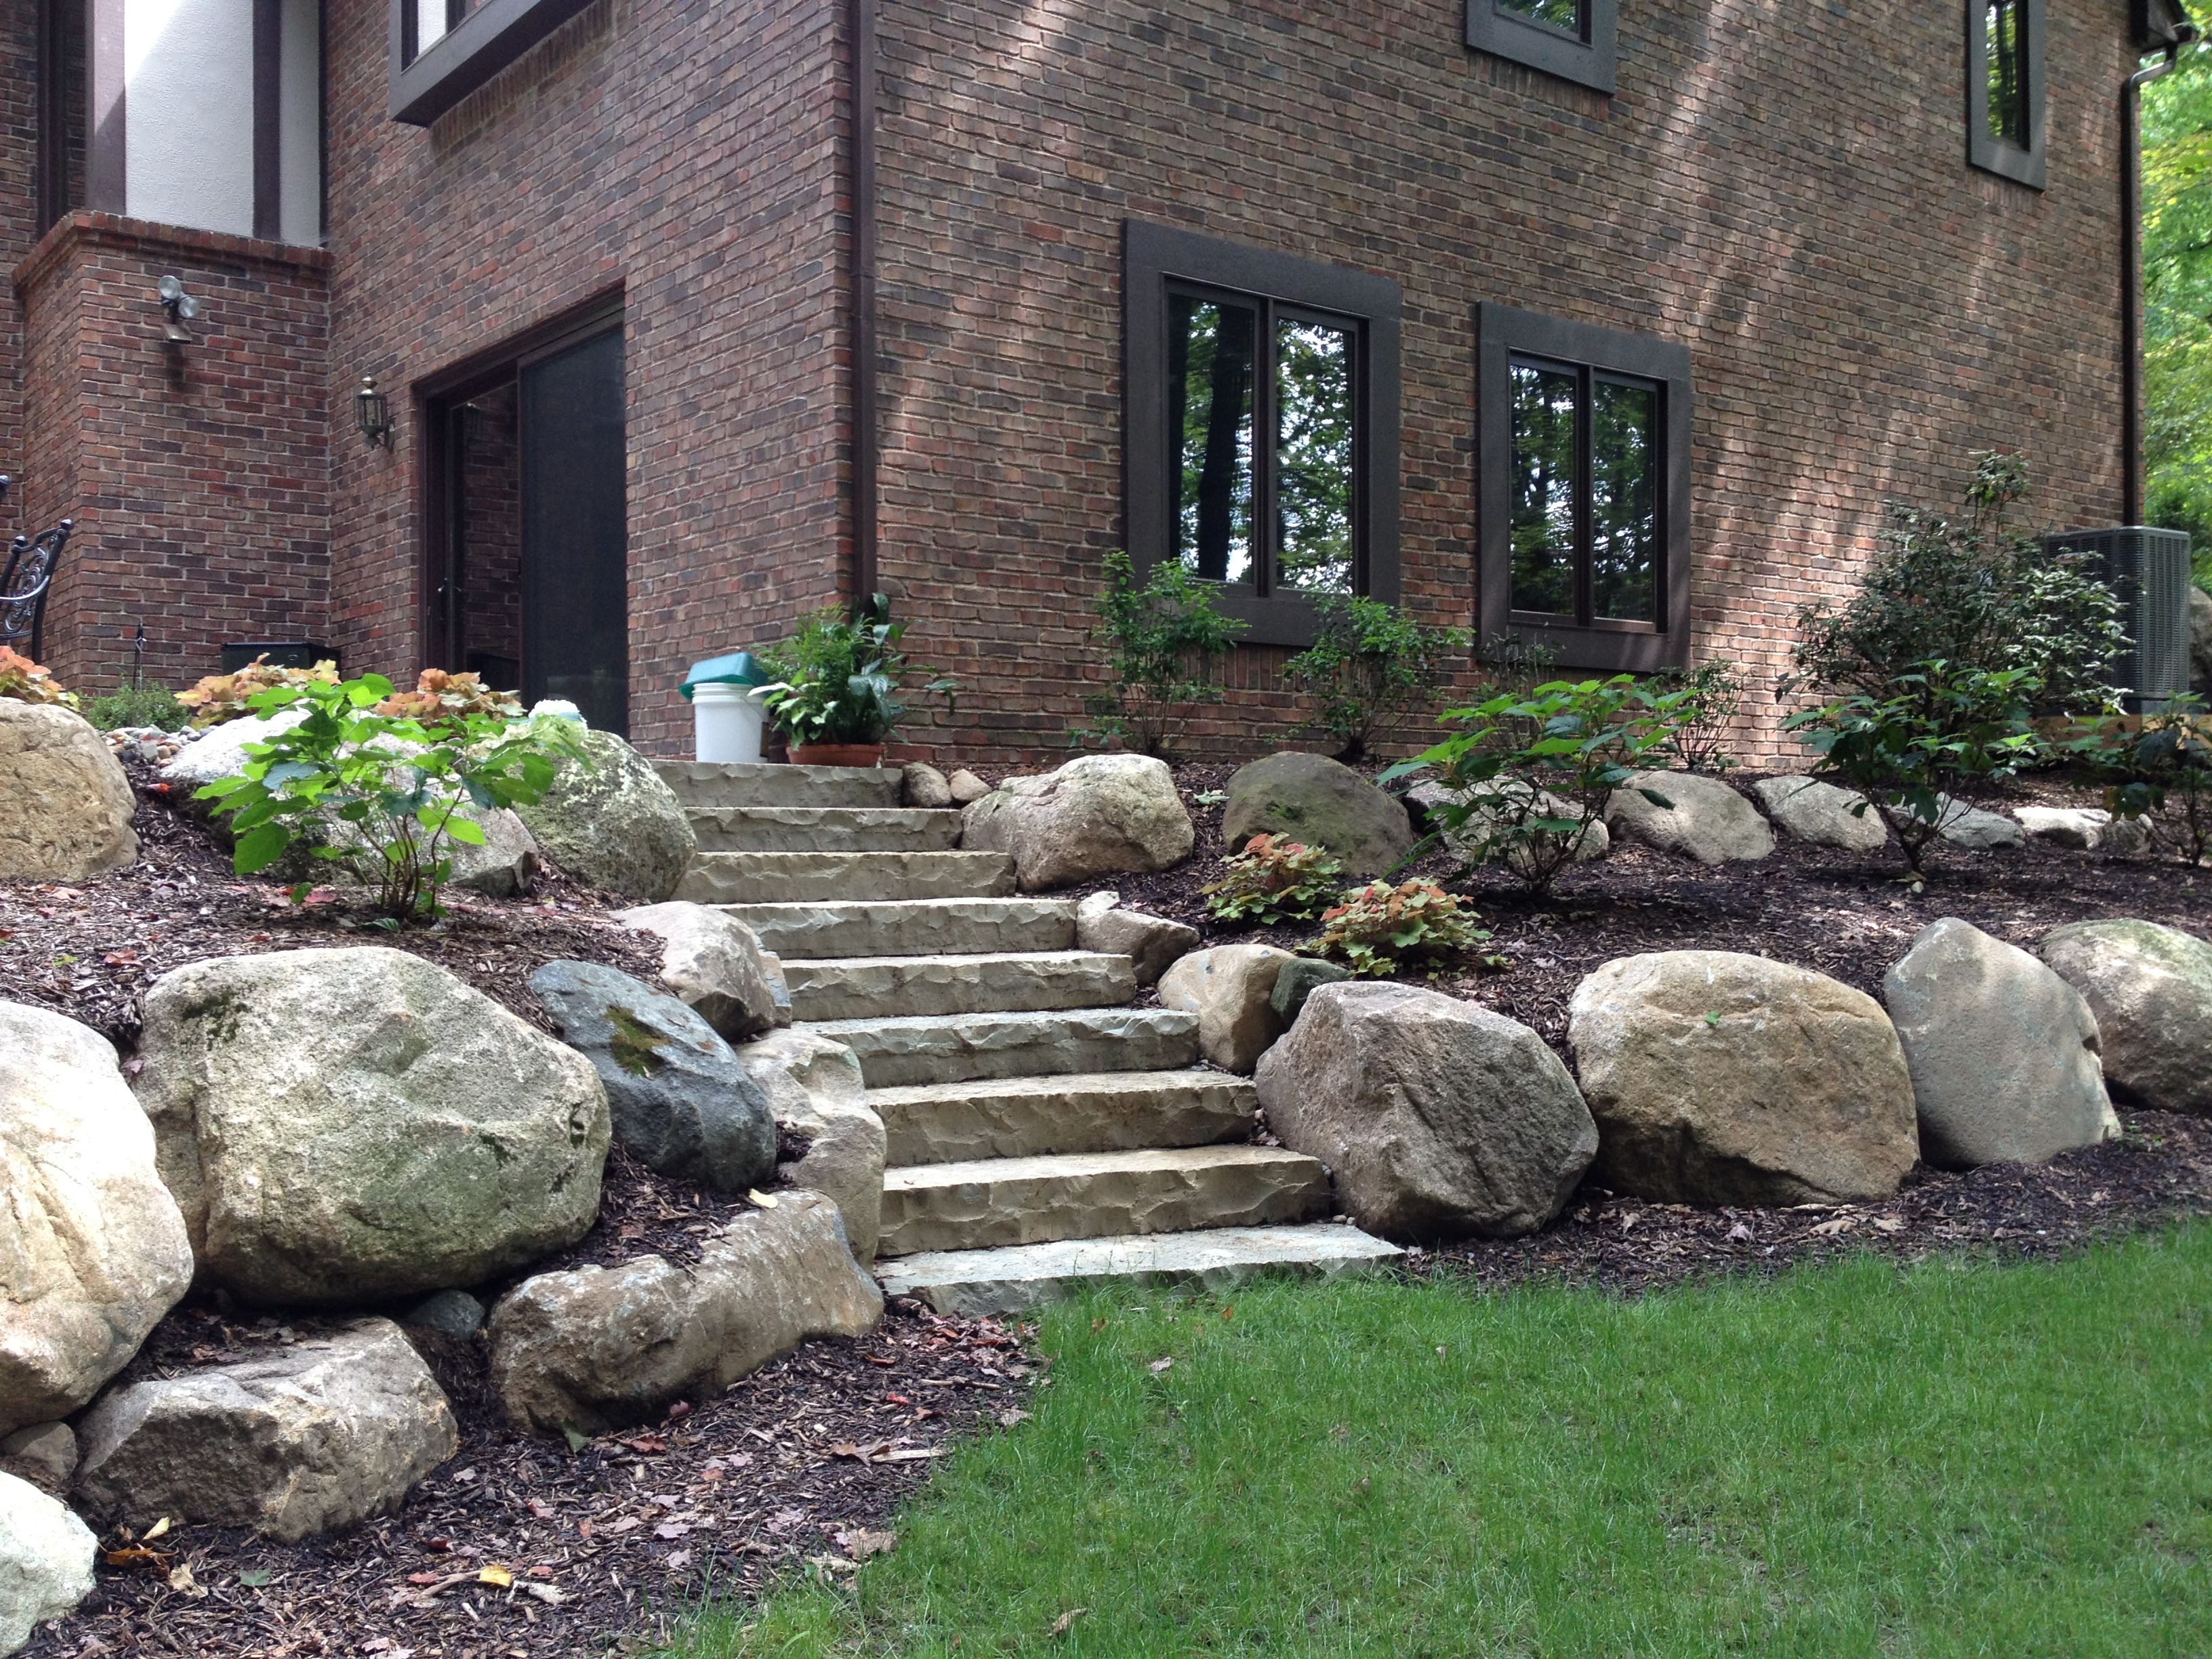 Landscape Design Retaining Wall Ideas luxuriously landscaped terrace garden Boulder Retaining Wall And Limestone Steps For Naturalized Landscape